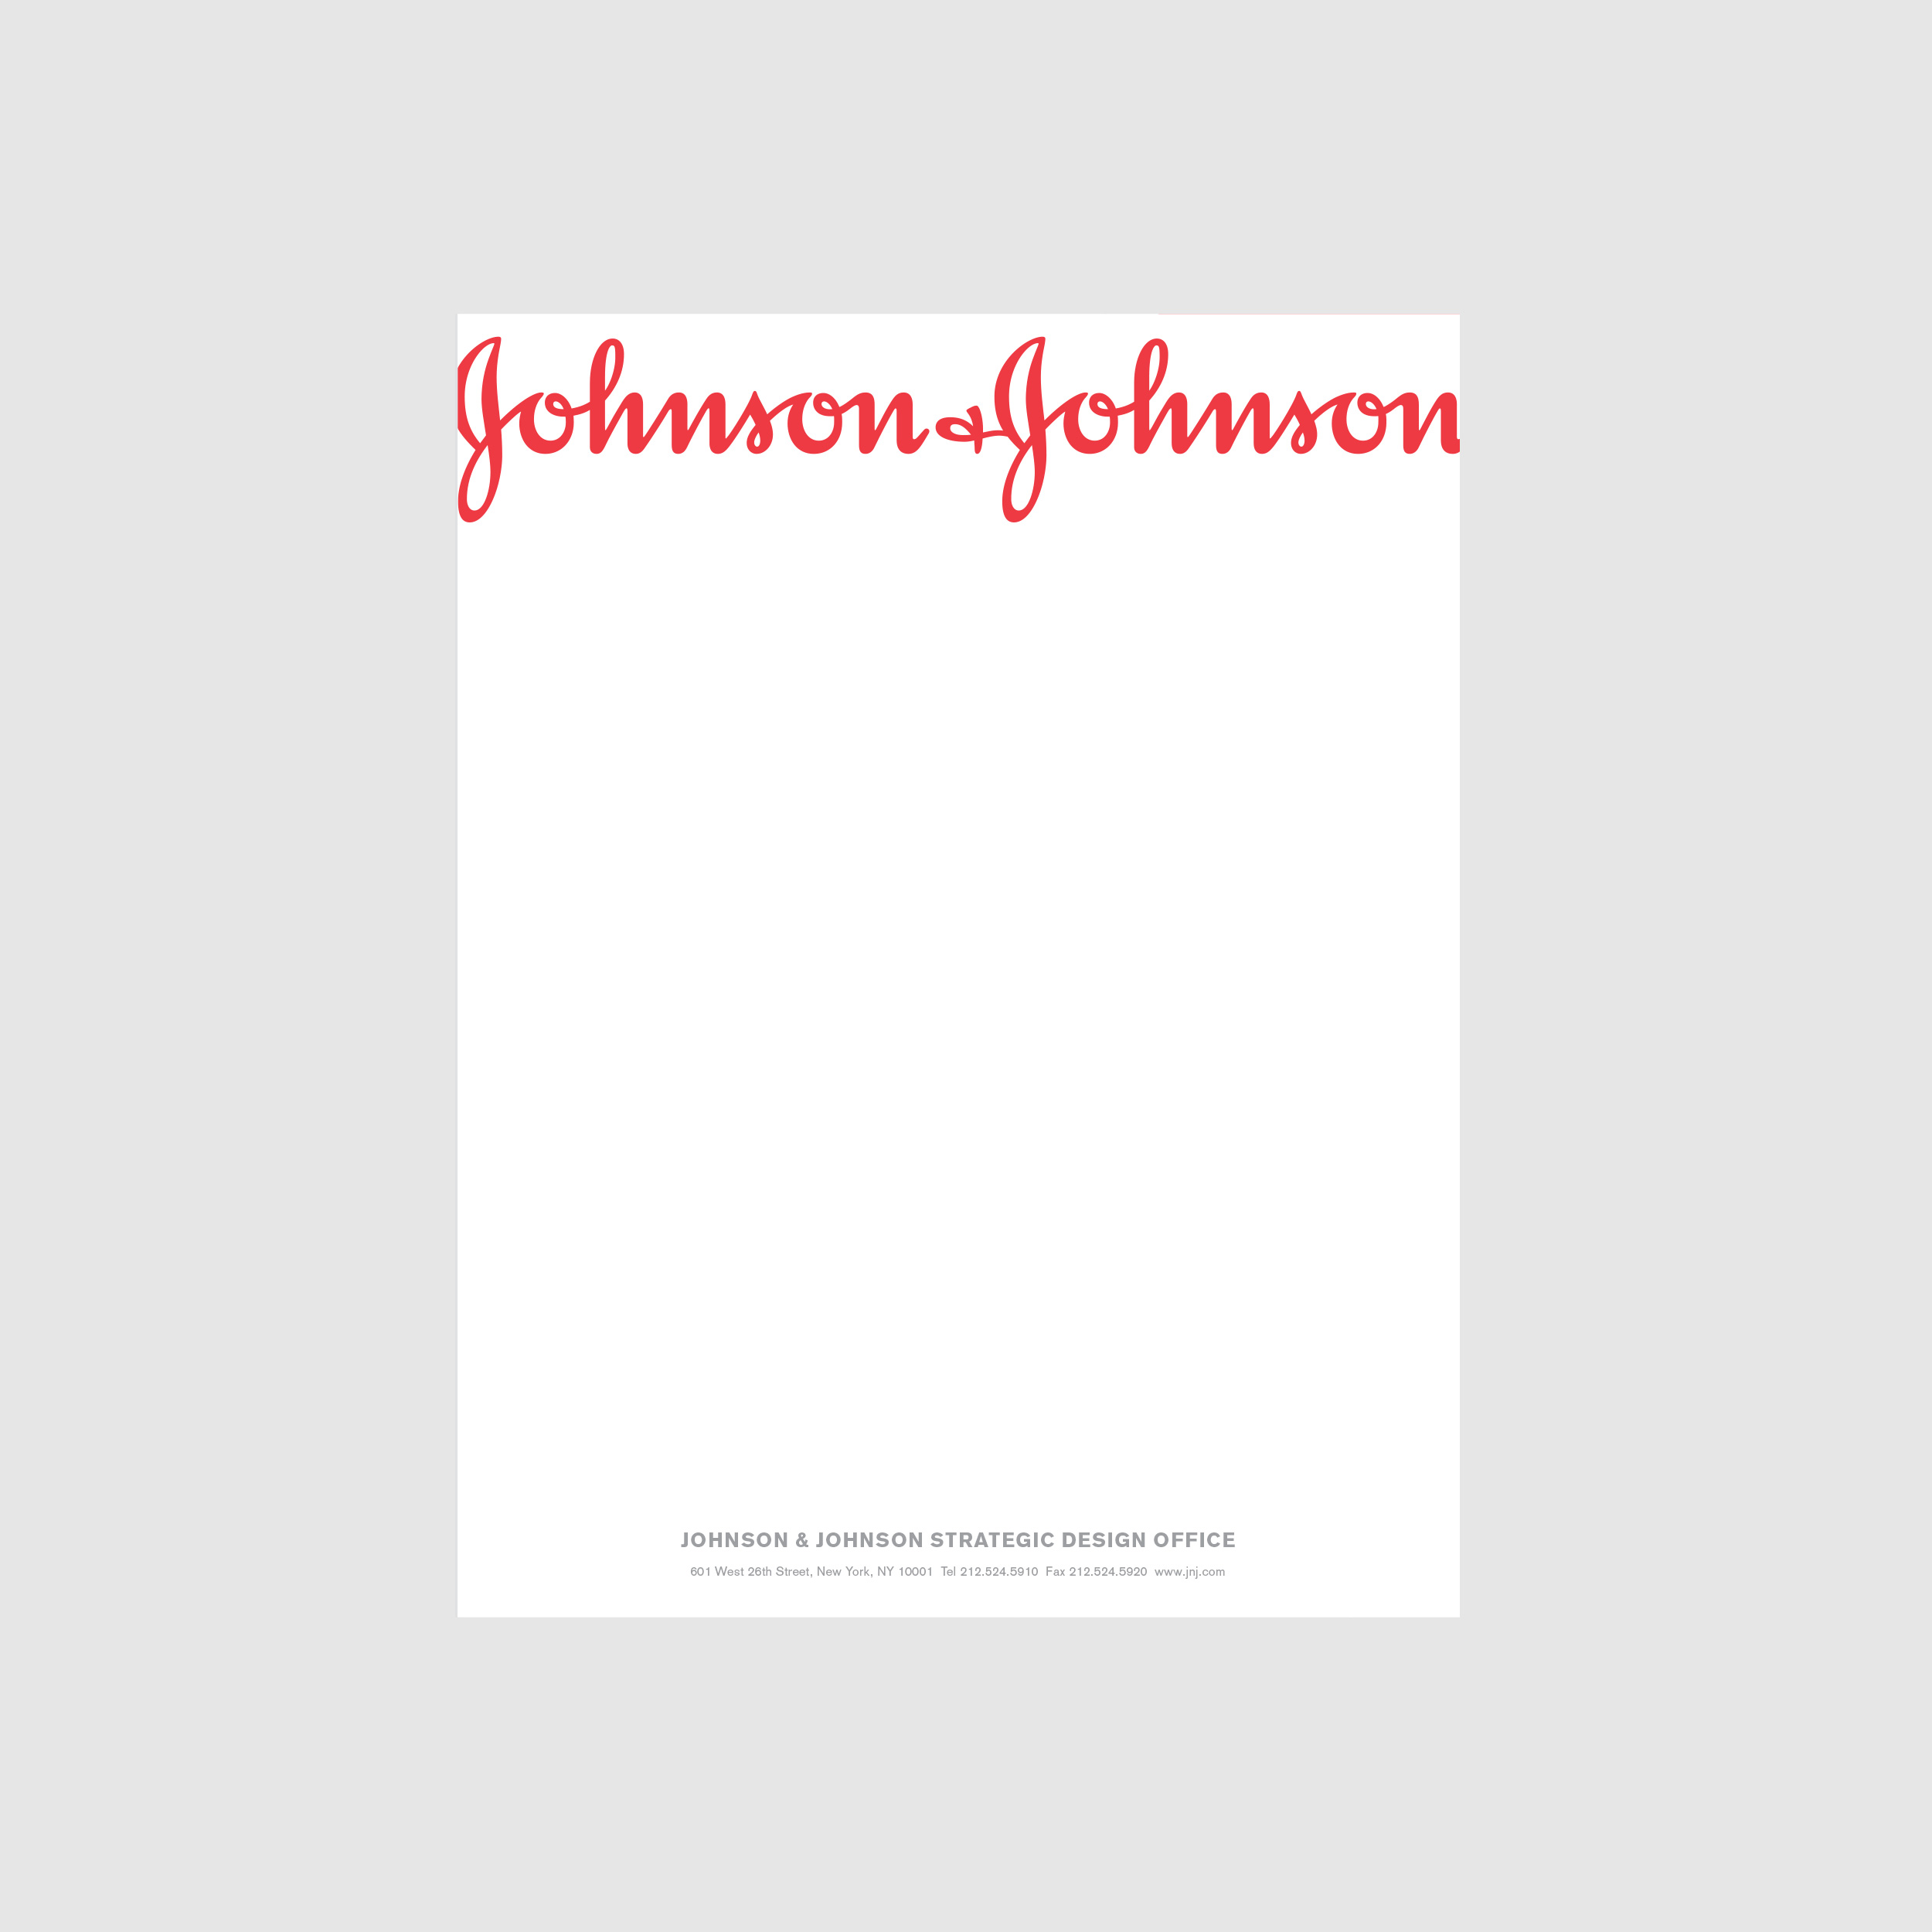 distinc_johnson_johnson_letterhead.jpg